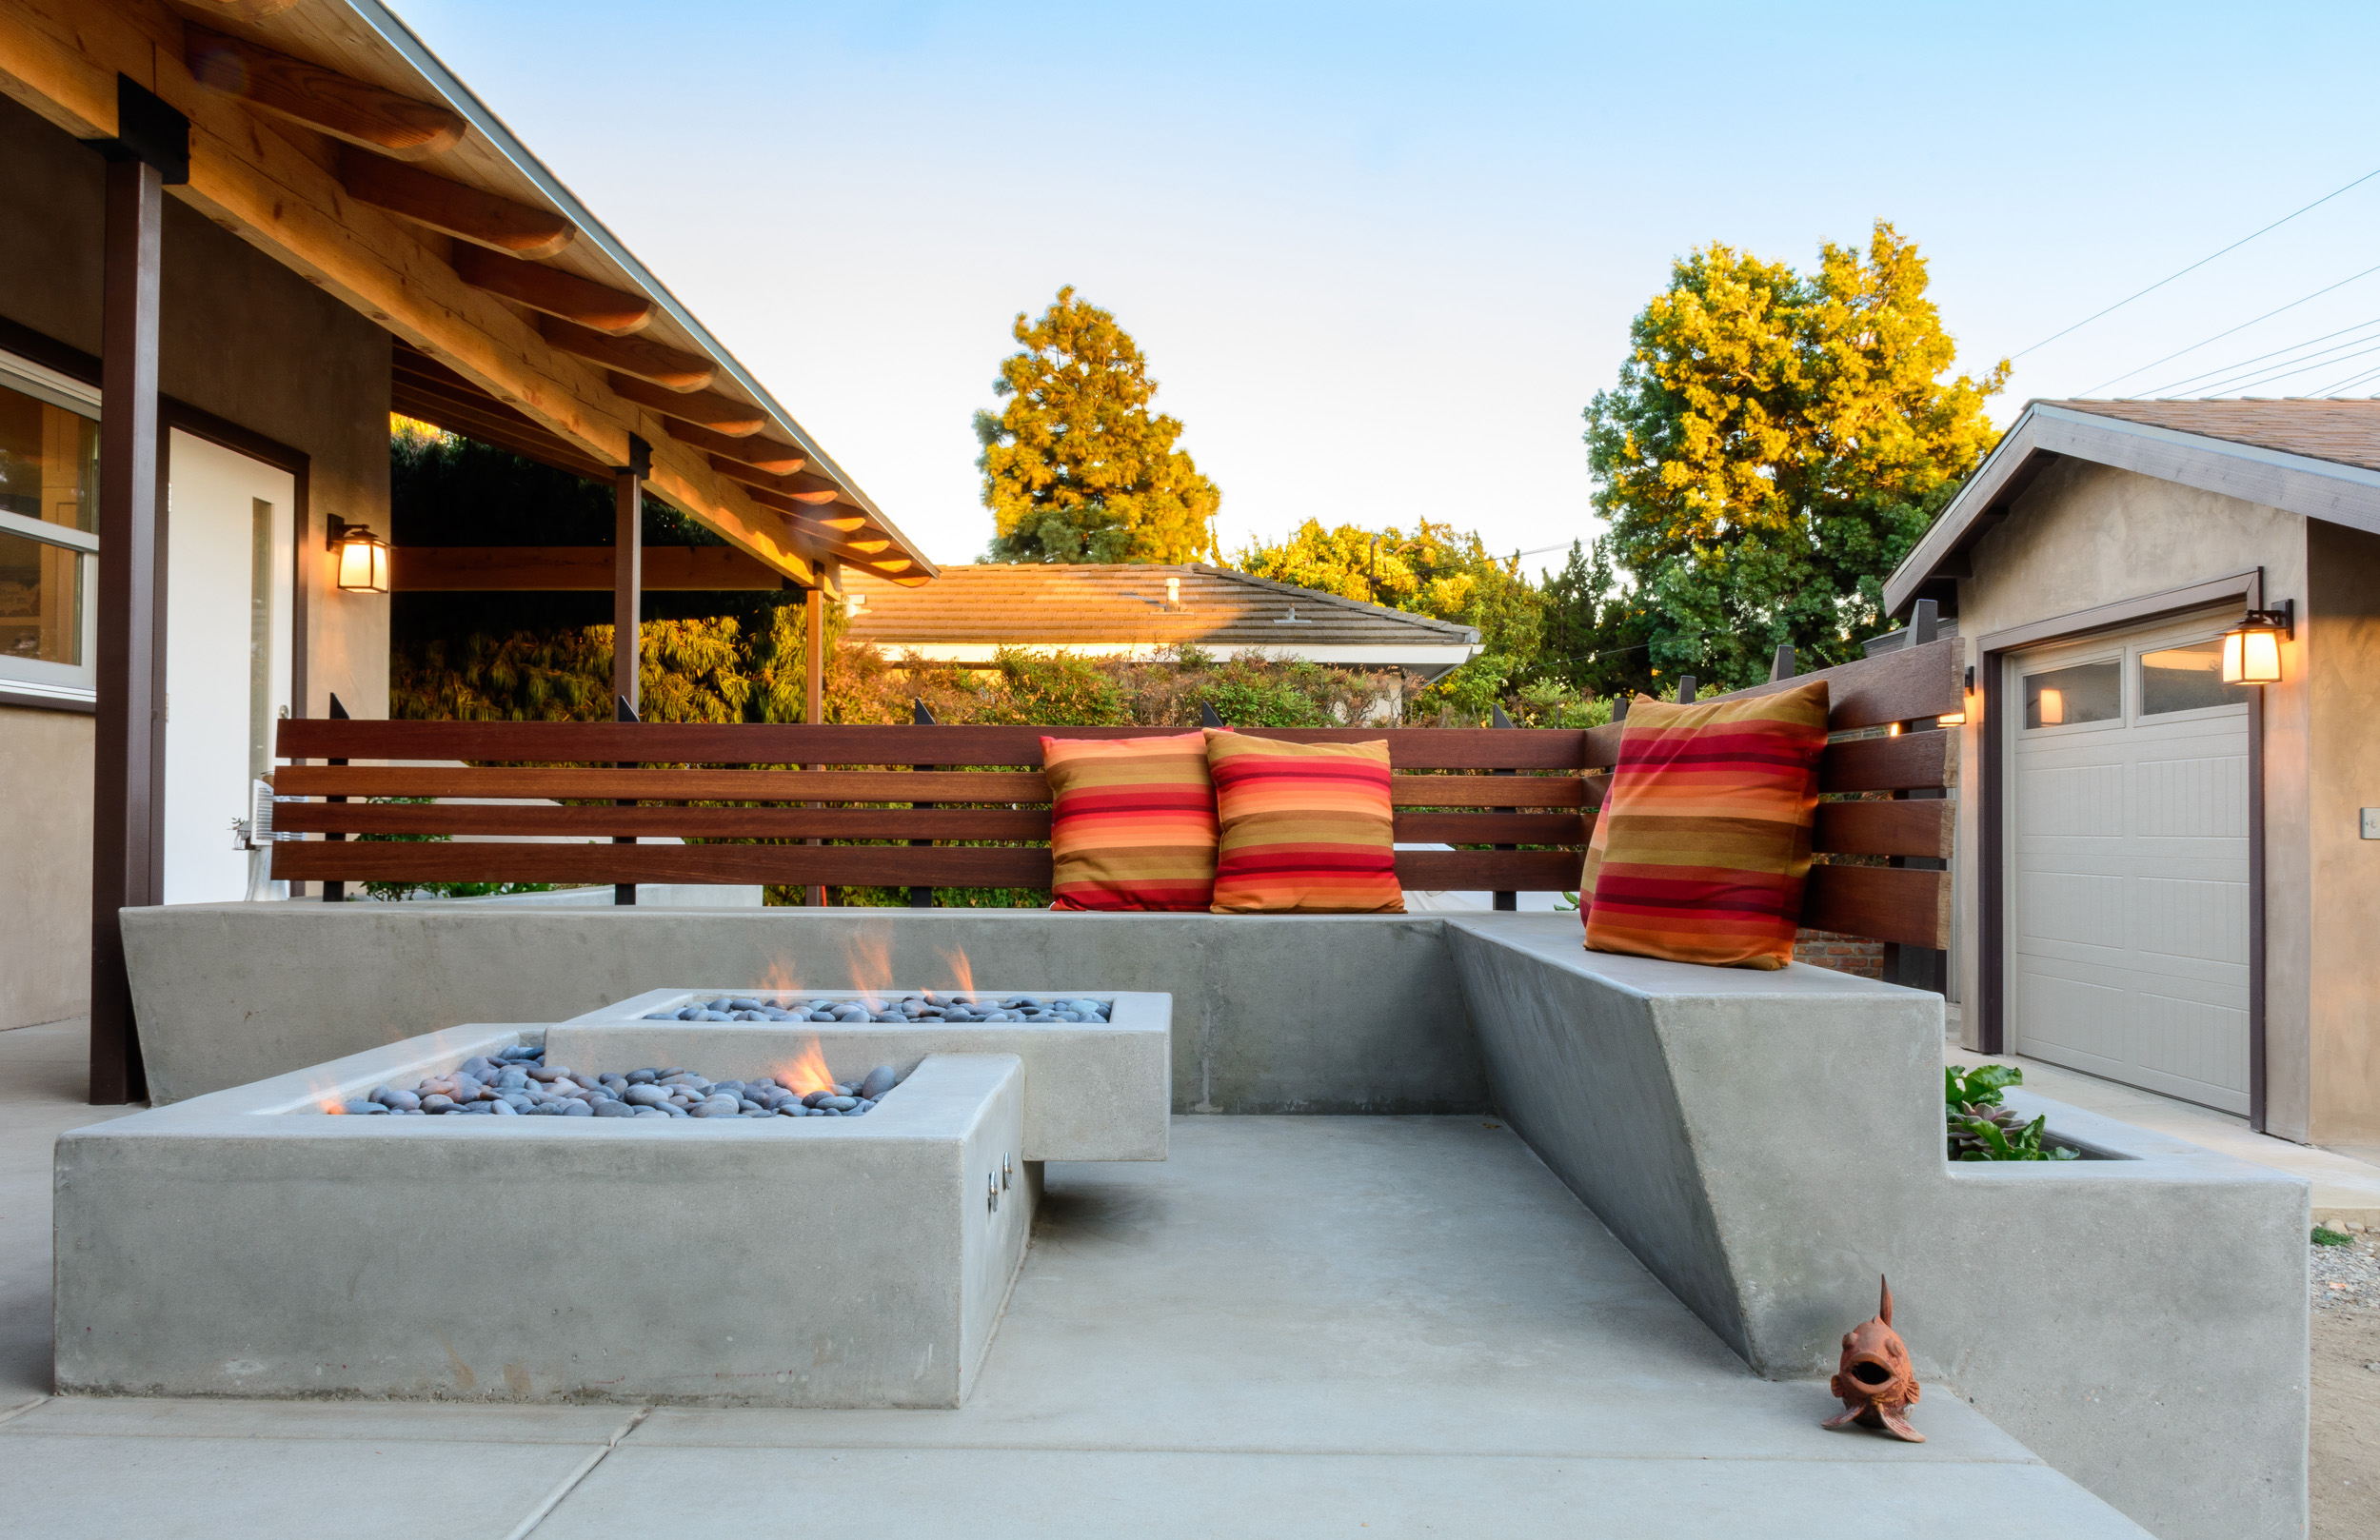 Mid-century ranch back patio deck with concrete seating and fire pit